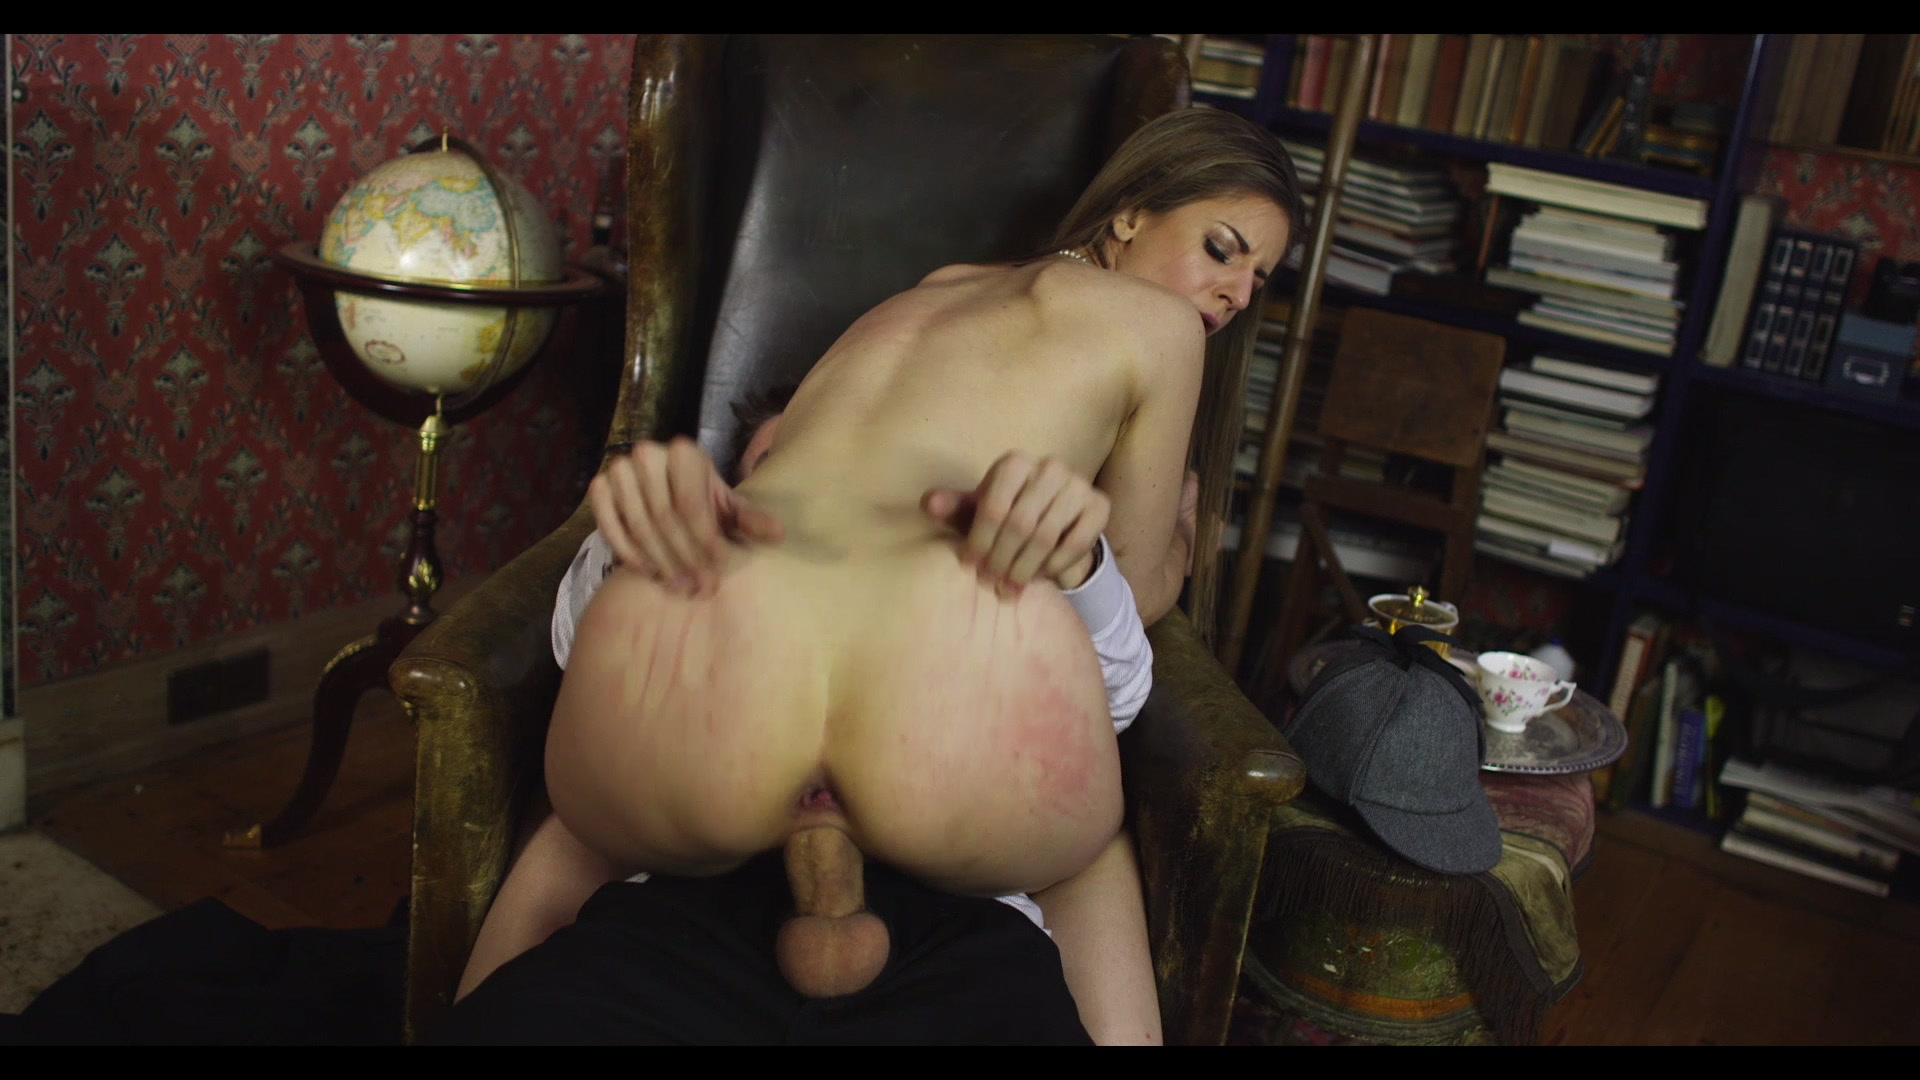 Scene with Stella Cox - image 20 out of 20